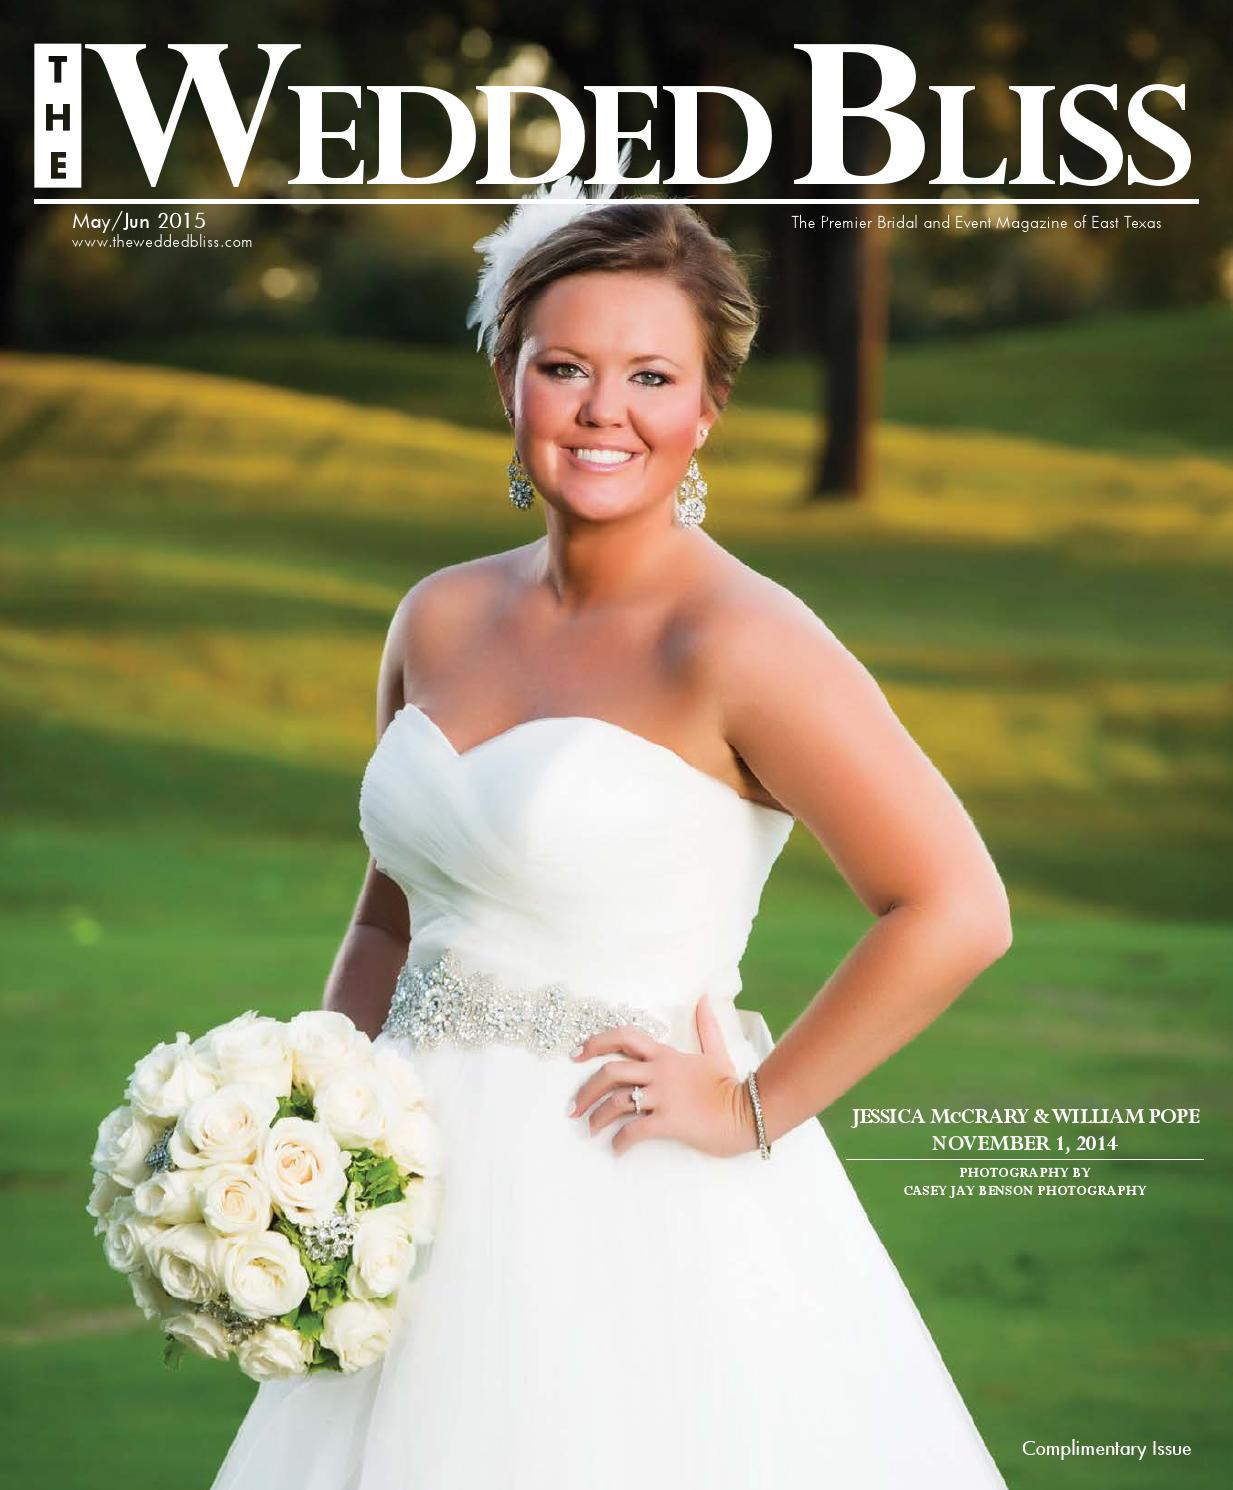 The Business of Wedded Bliss